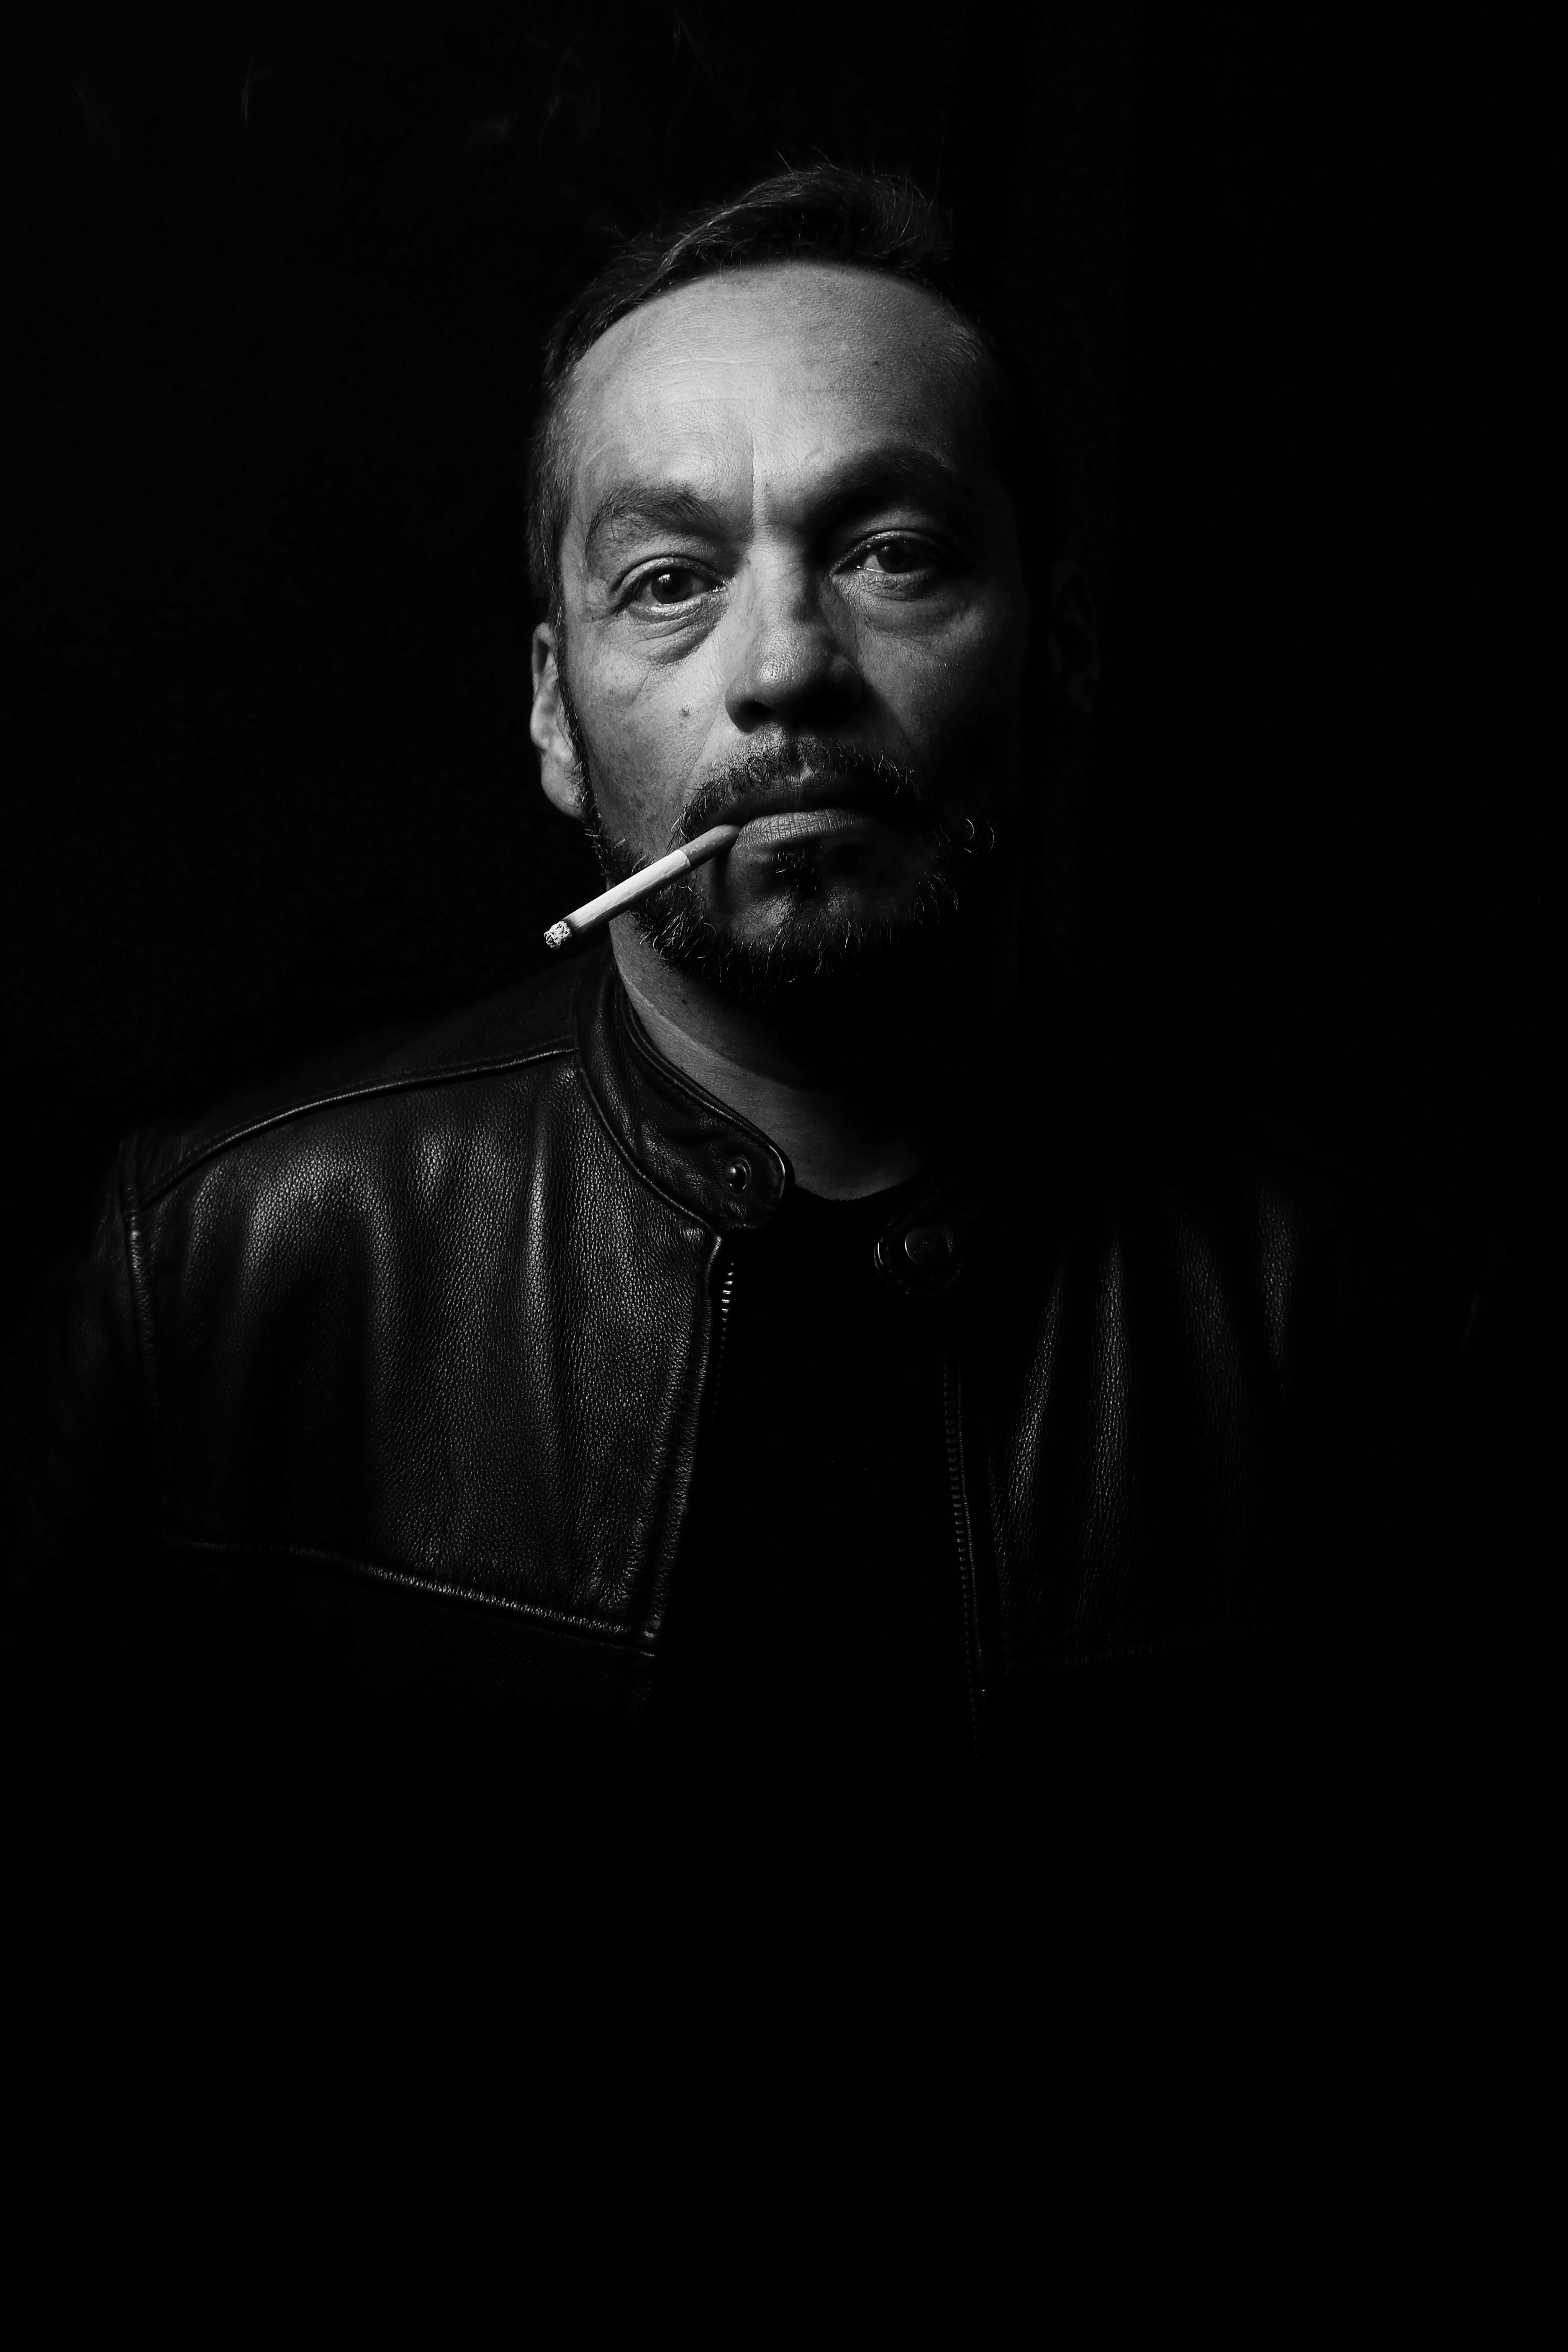 A man smoking a cigarette in the dark wearing a leather jacket in San José